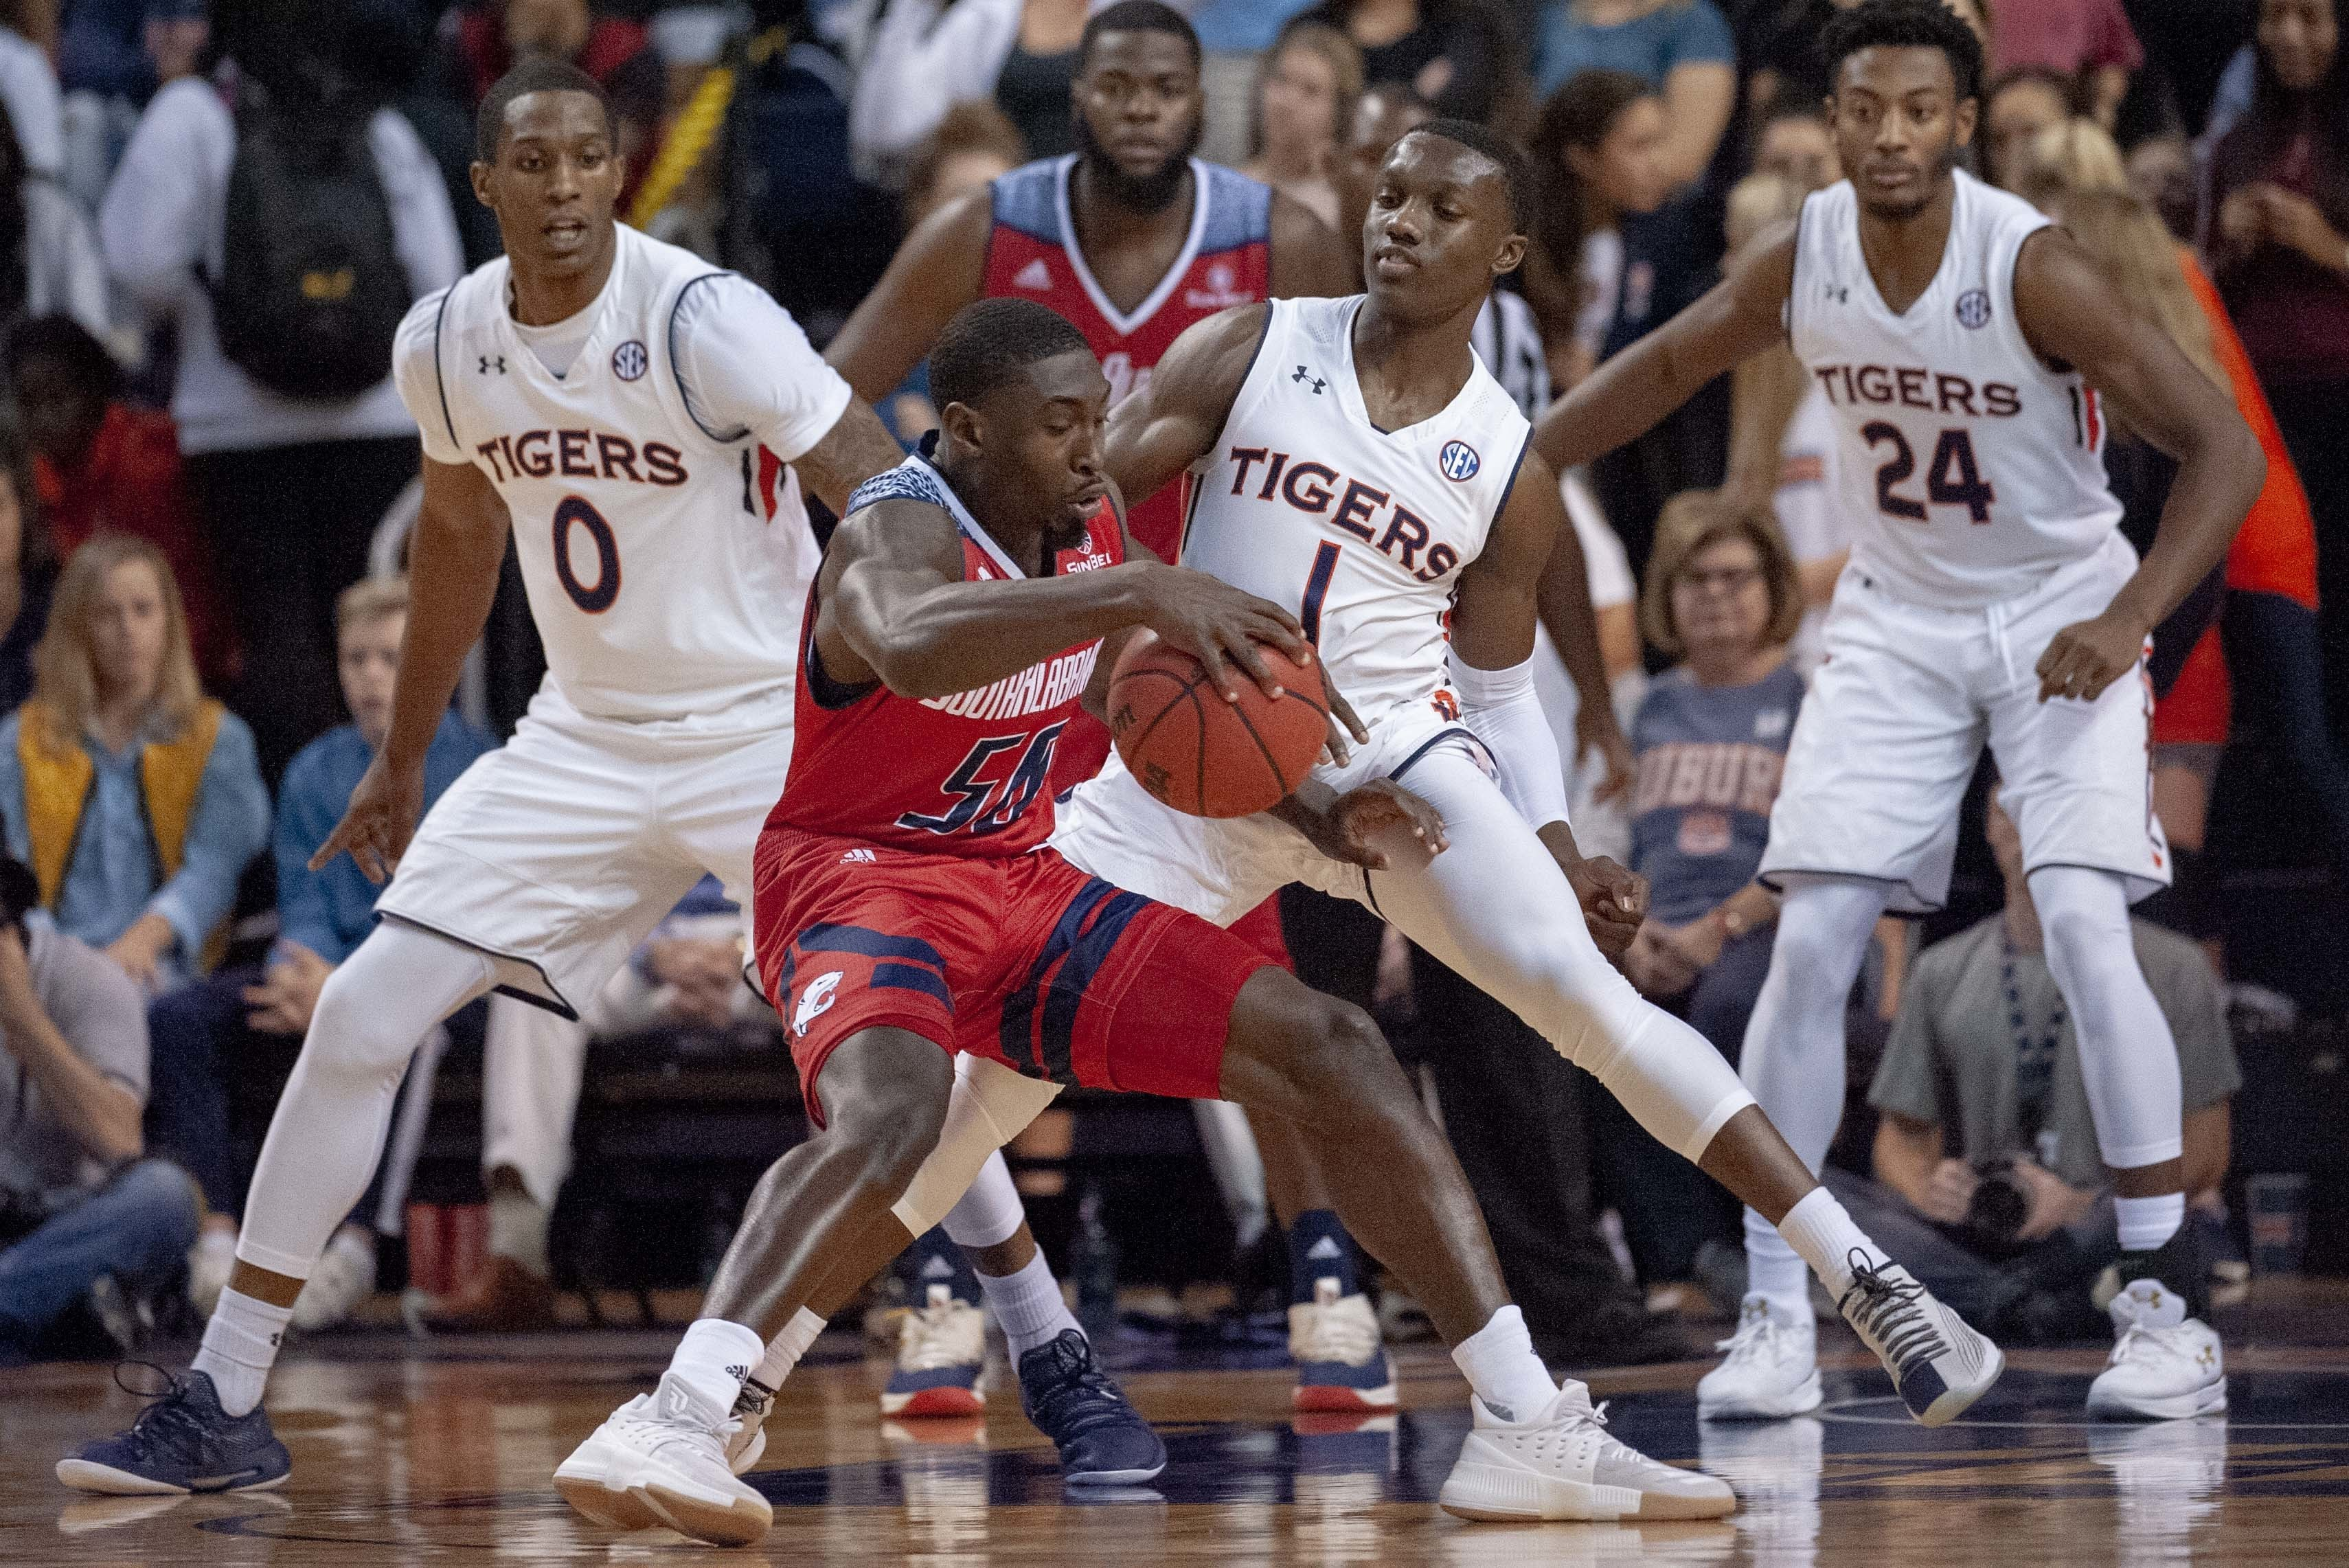 Harper leads No. 11 Auburn to 101-58 win over South Alabama